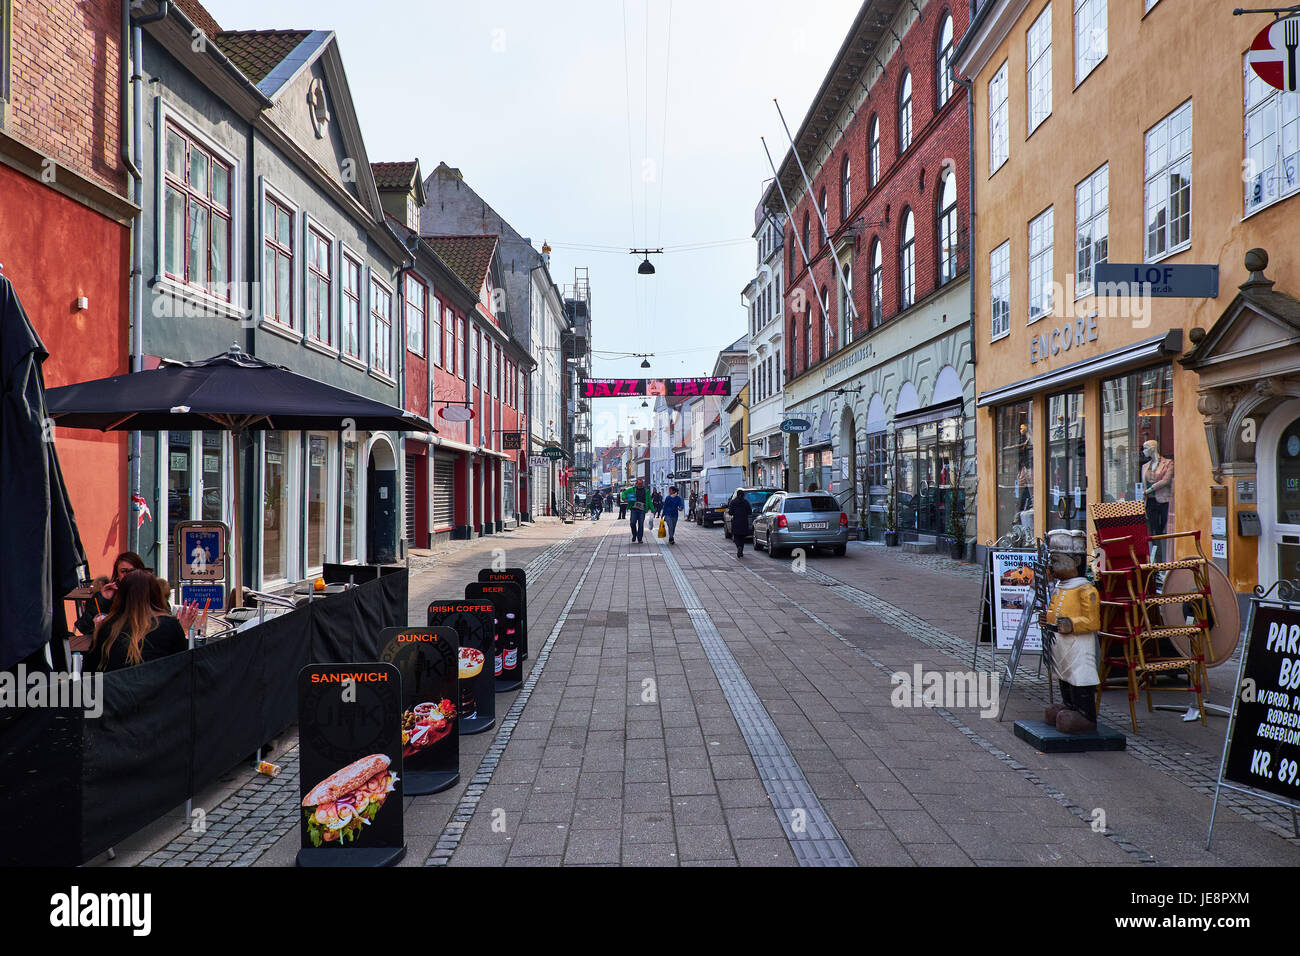 ELSINORE, DENMARK - APRIL 30, 2016: sandwich bar in an empty pedestrian street in Esinore - Stock Image